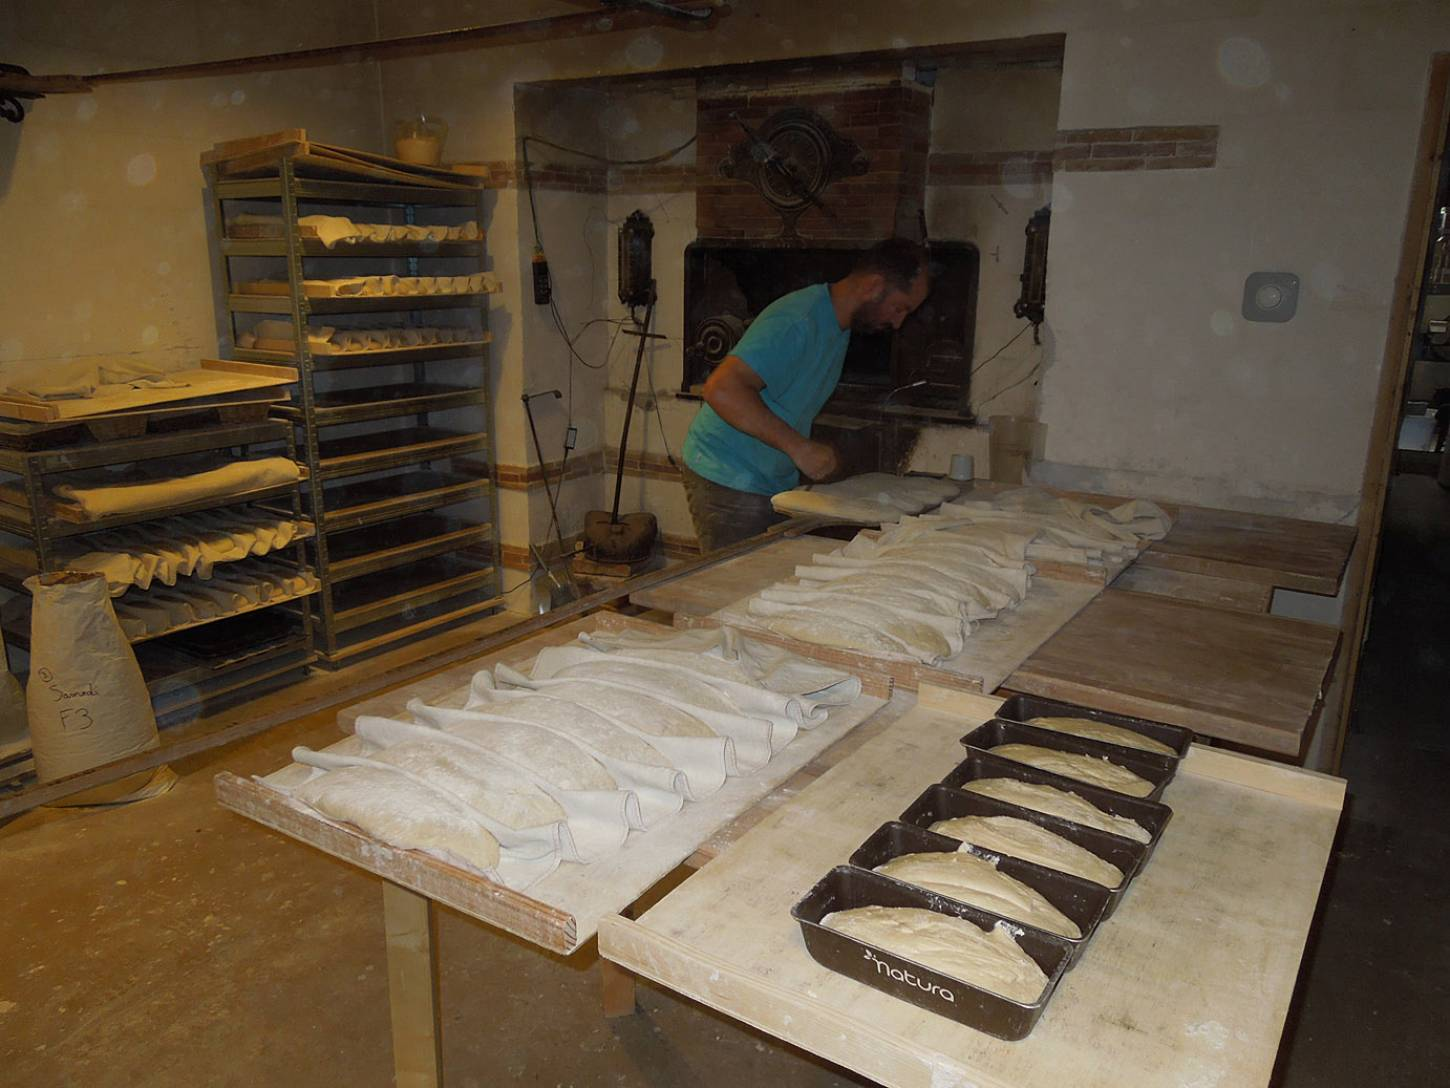 visit to the boulangers paysan of <a href='https://www.facebook.com/Ferme.Campagnolle' target=_blank>Ferme Campognole</a> - loading oven - 8:26am&nbsp;29<sup>th</sup>&nbsp;May.&nbsp;'15